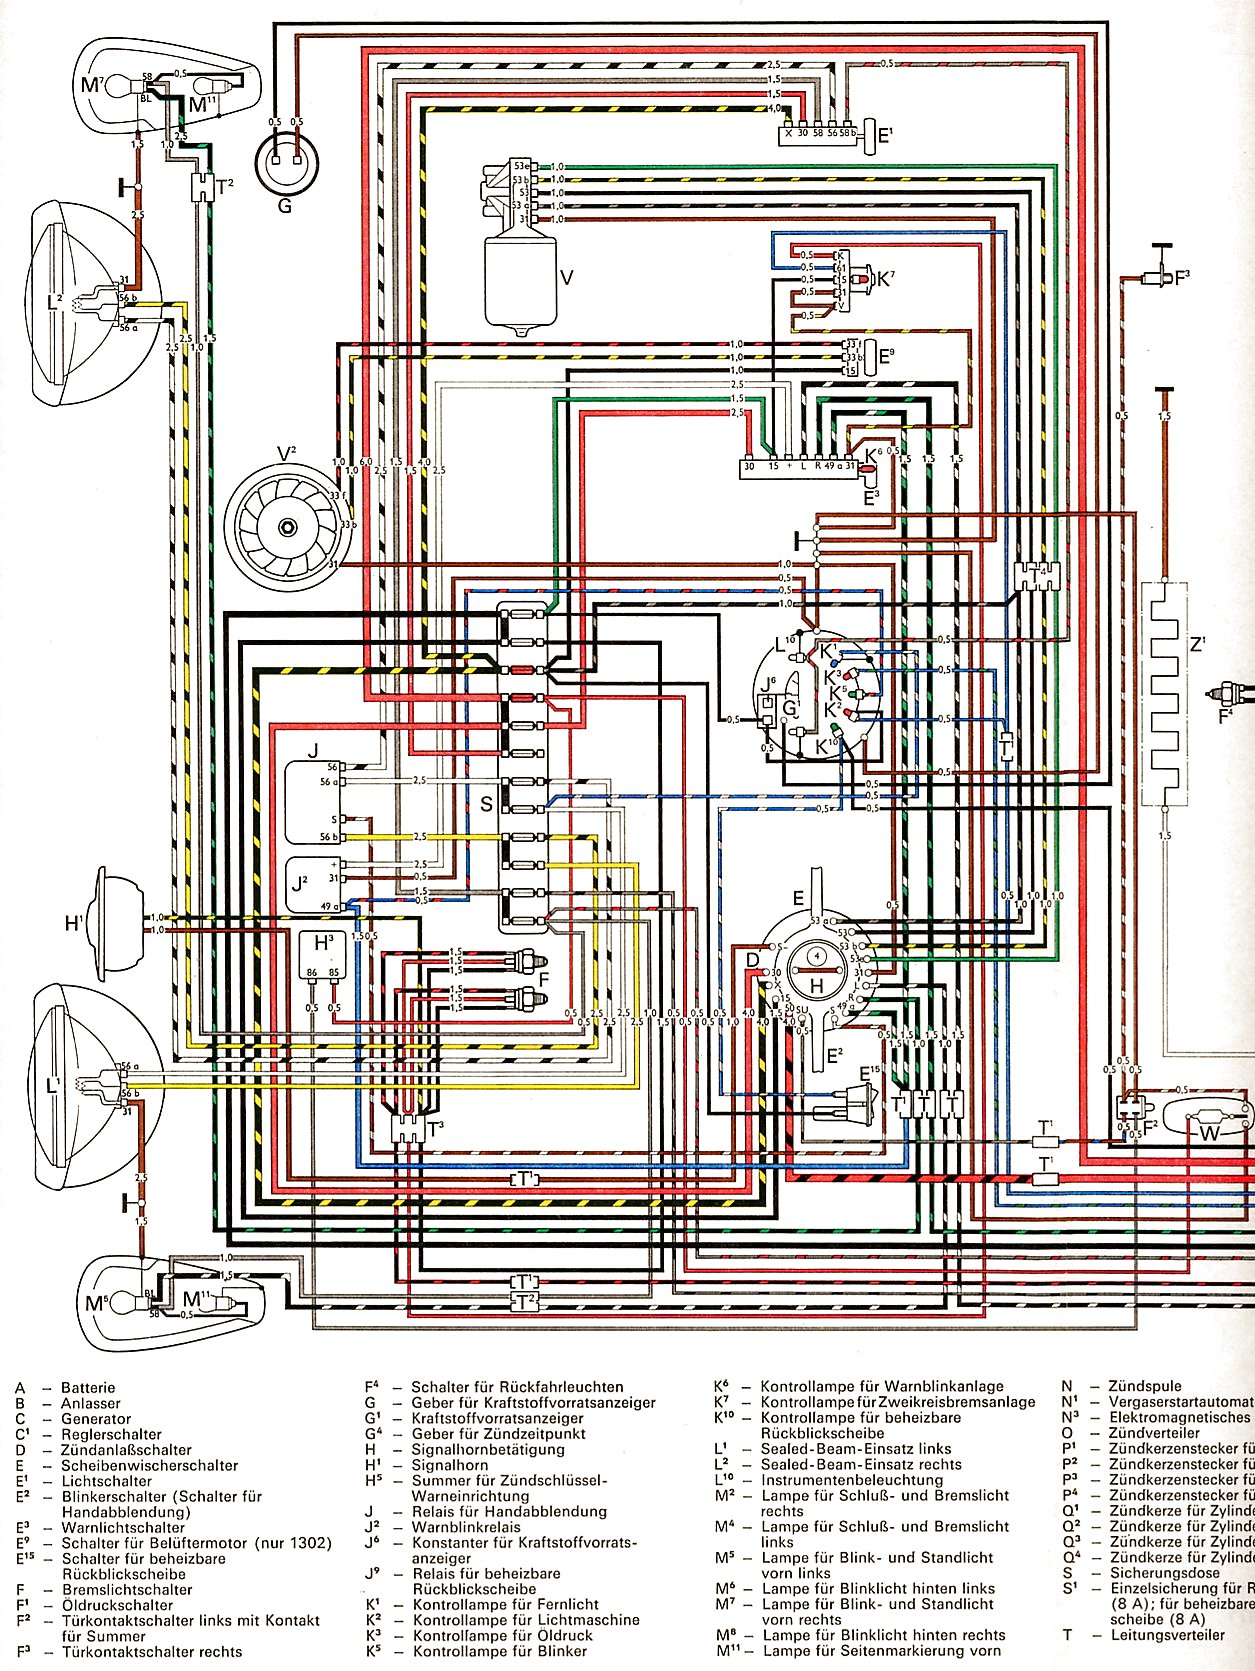 72 vw beetle wiring diagram trusted wiring diagrams \u2022 1972 vw beetle engine diagram 72 super beetle wiring diagram wiring diagrams schematics rh noppon co 1972 super beetle wiring diagram 72 vw beetle generator wiring diagram